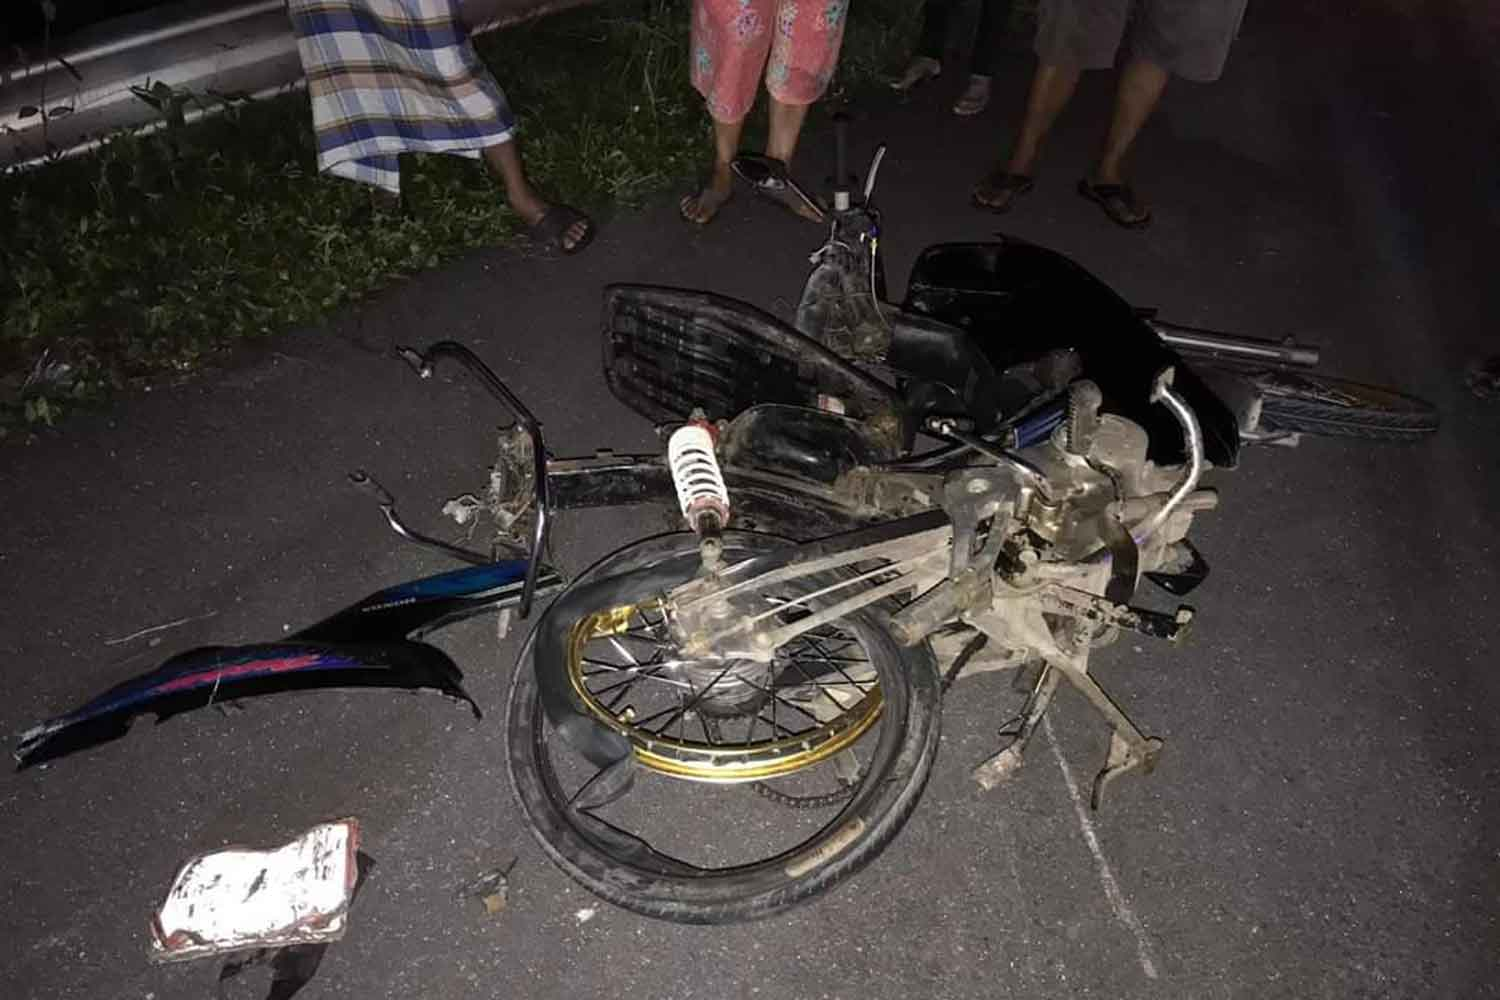 The wrecked motorcycle of a 17-year-old man who died instantly after it collided head-on with a pickup truck in Muang district of Nakhon Si Thammarat province Saturday night. (Photo by Nujaree Raekrun)